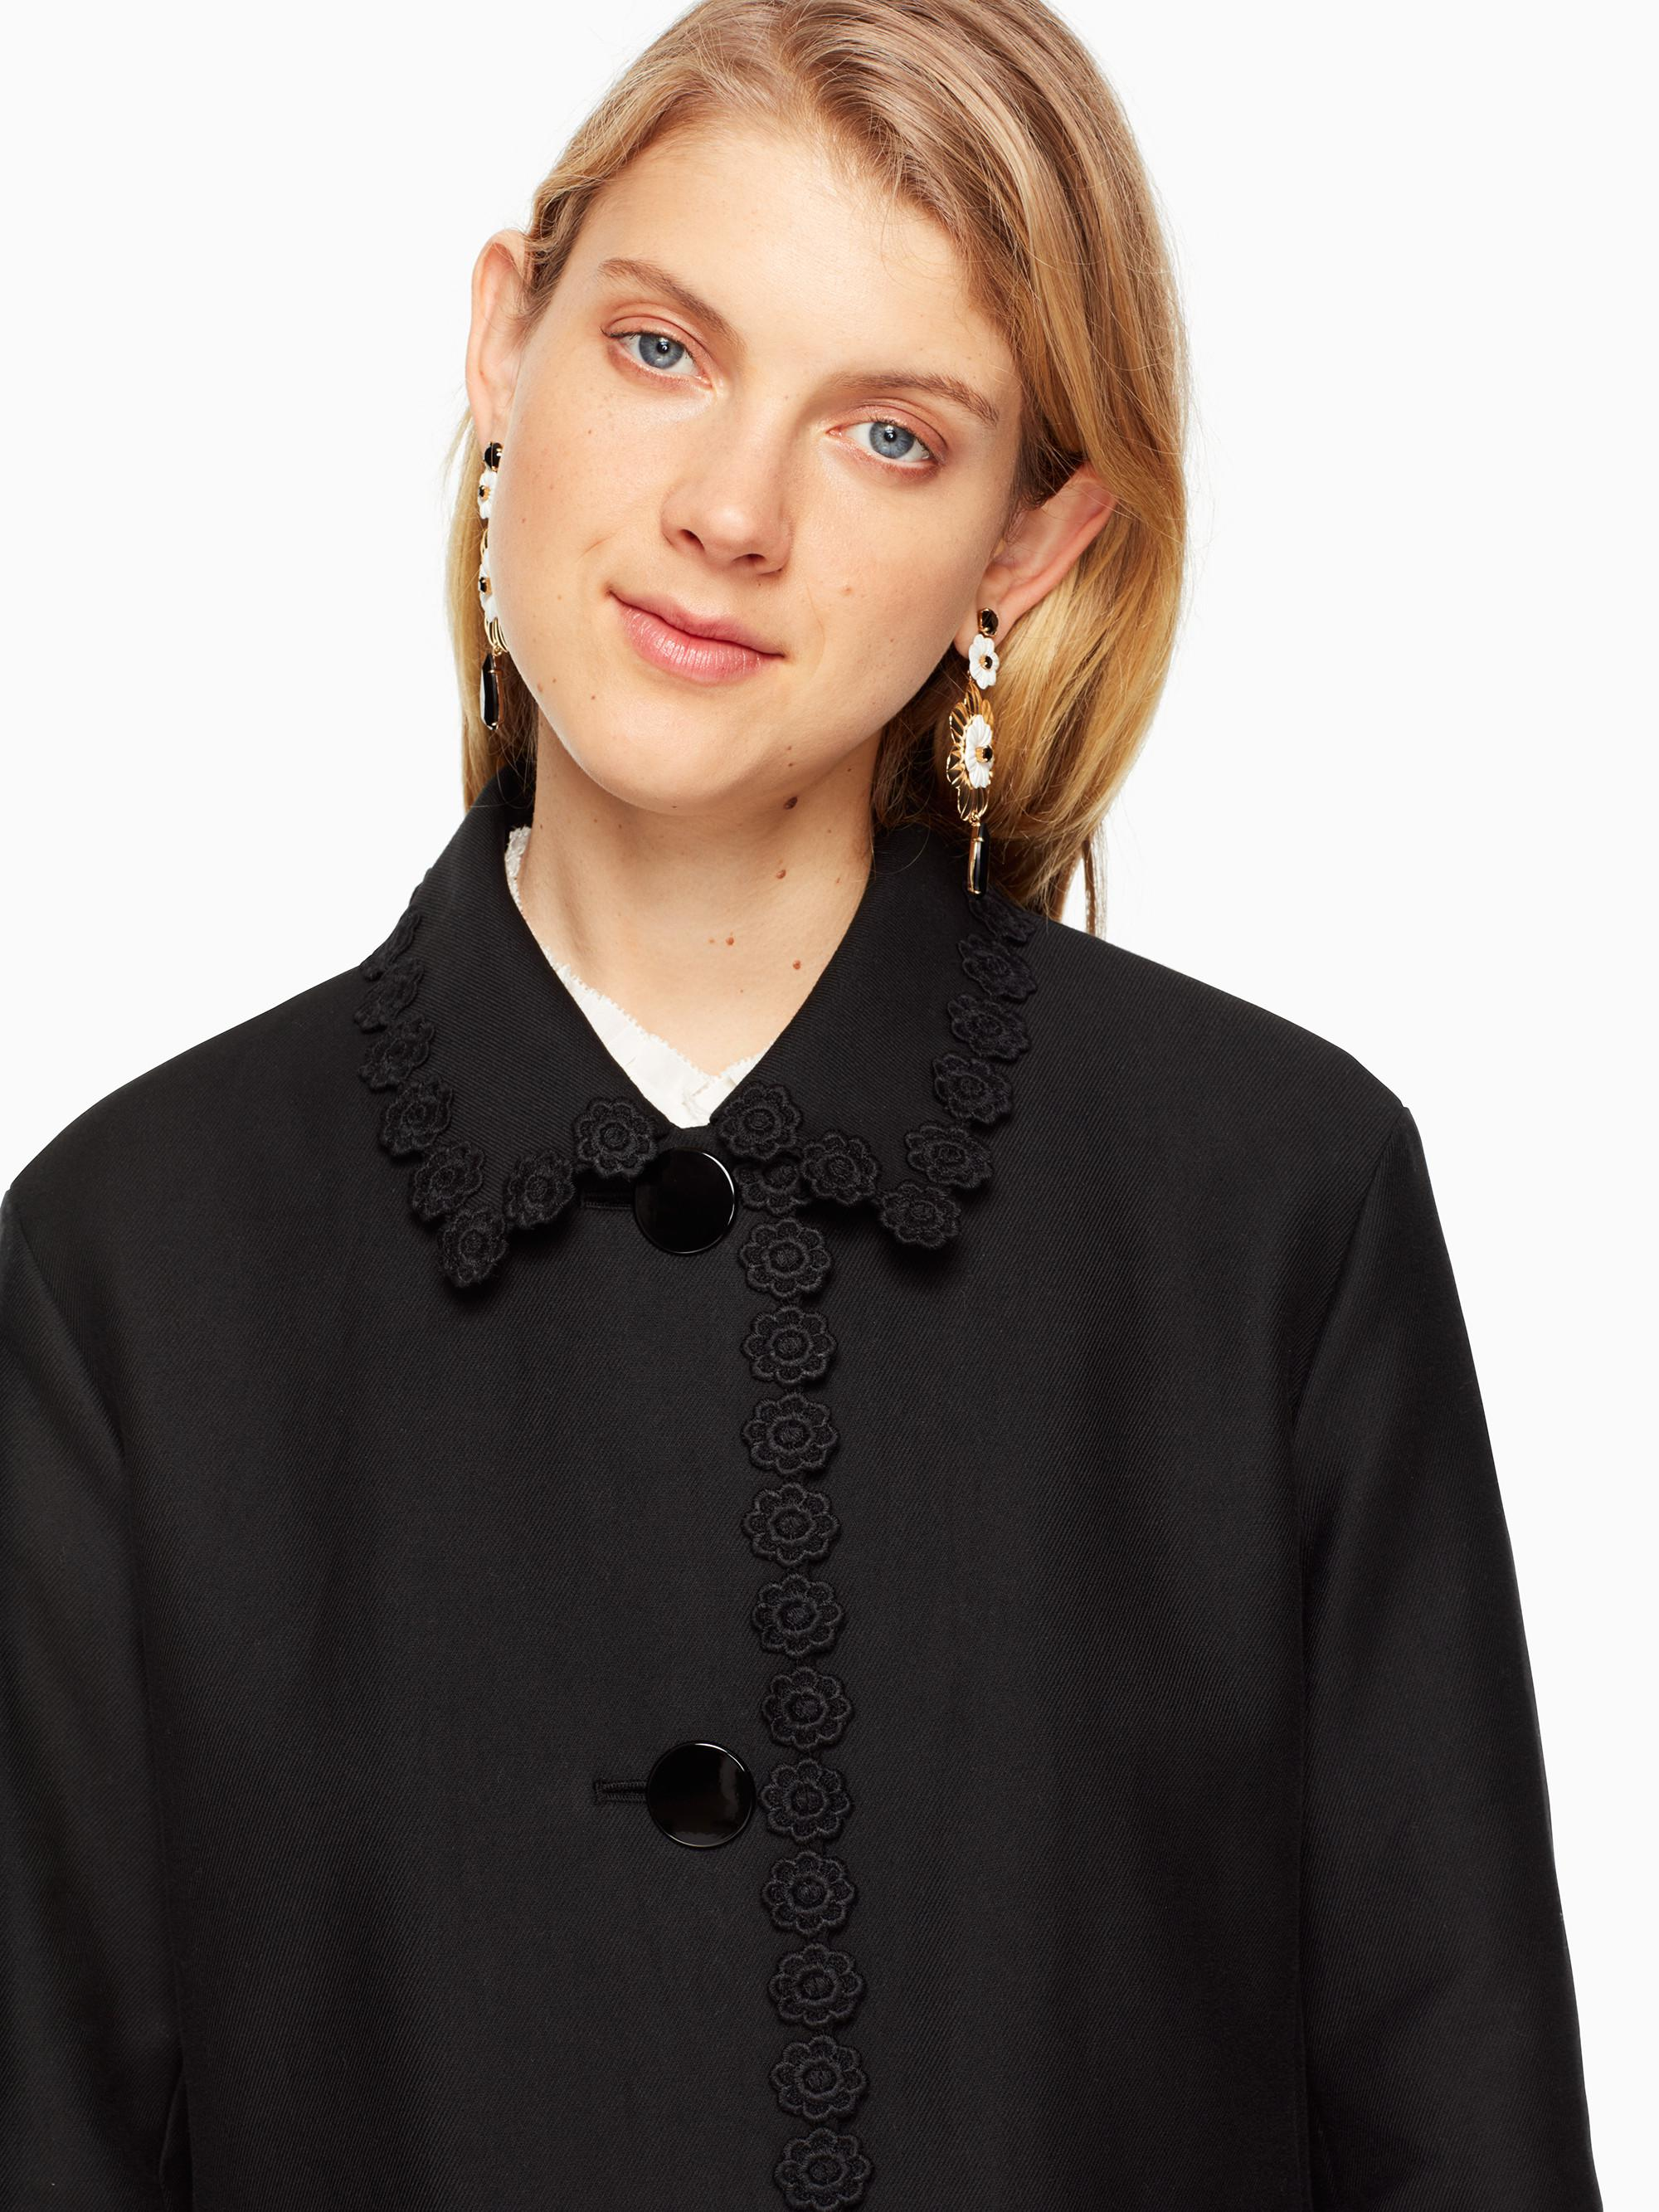 Lyst - Kate Spade Floral Lace Trim Coat in Black